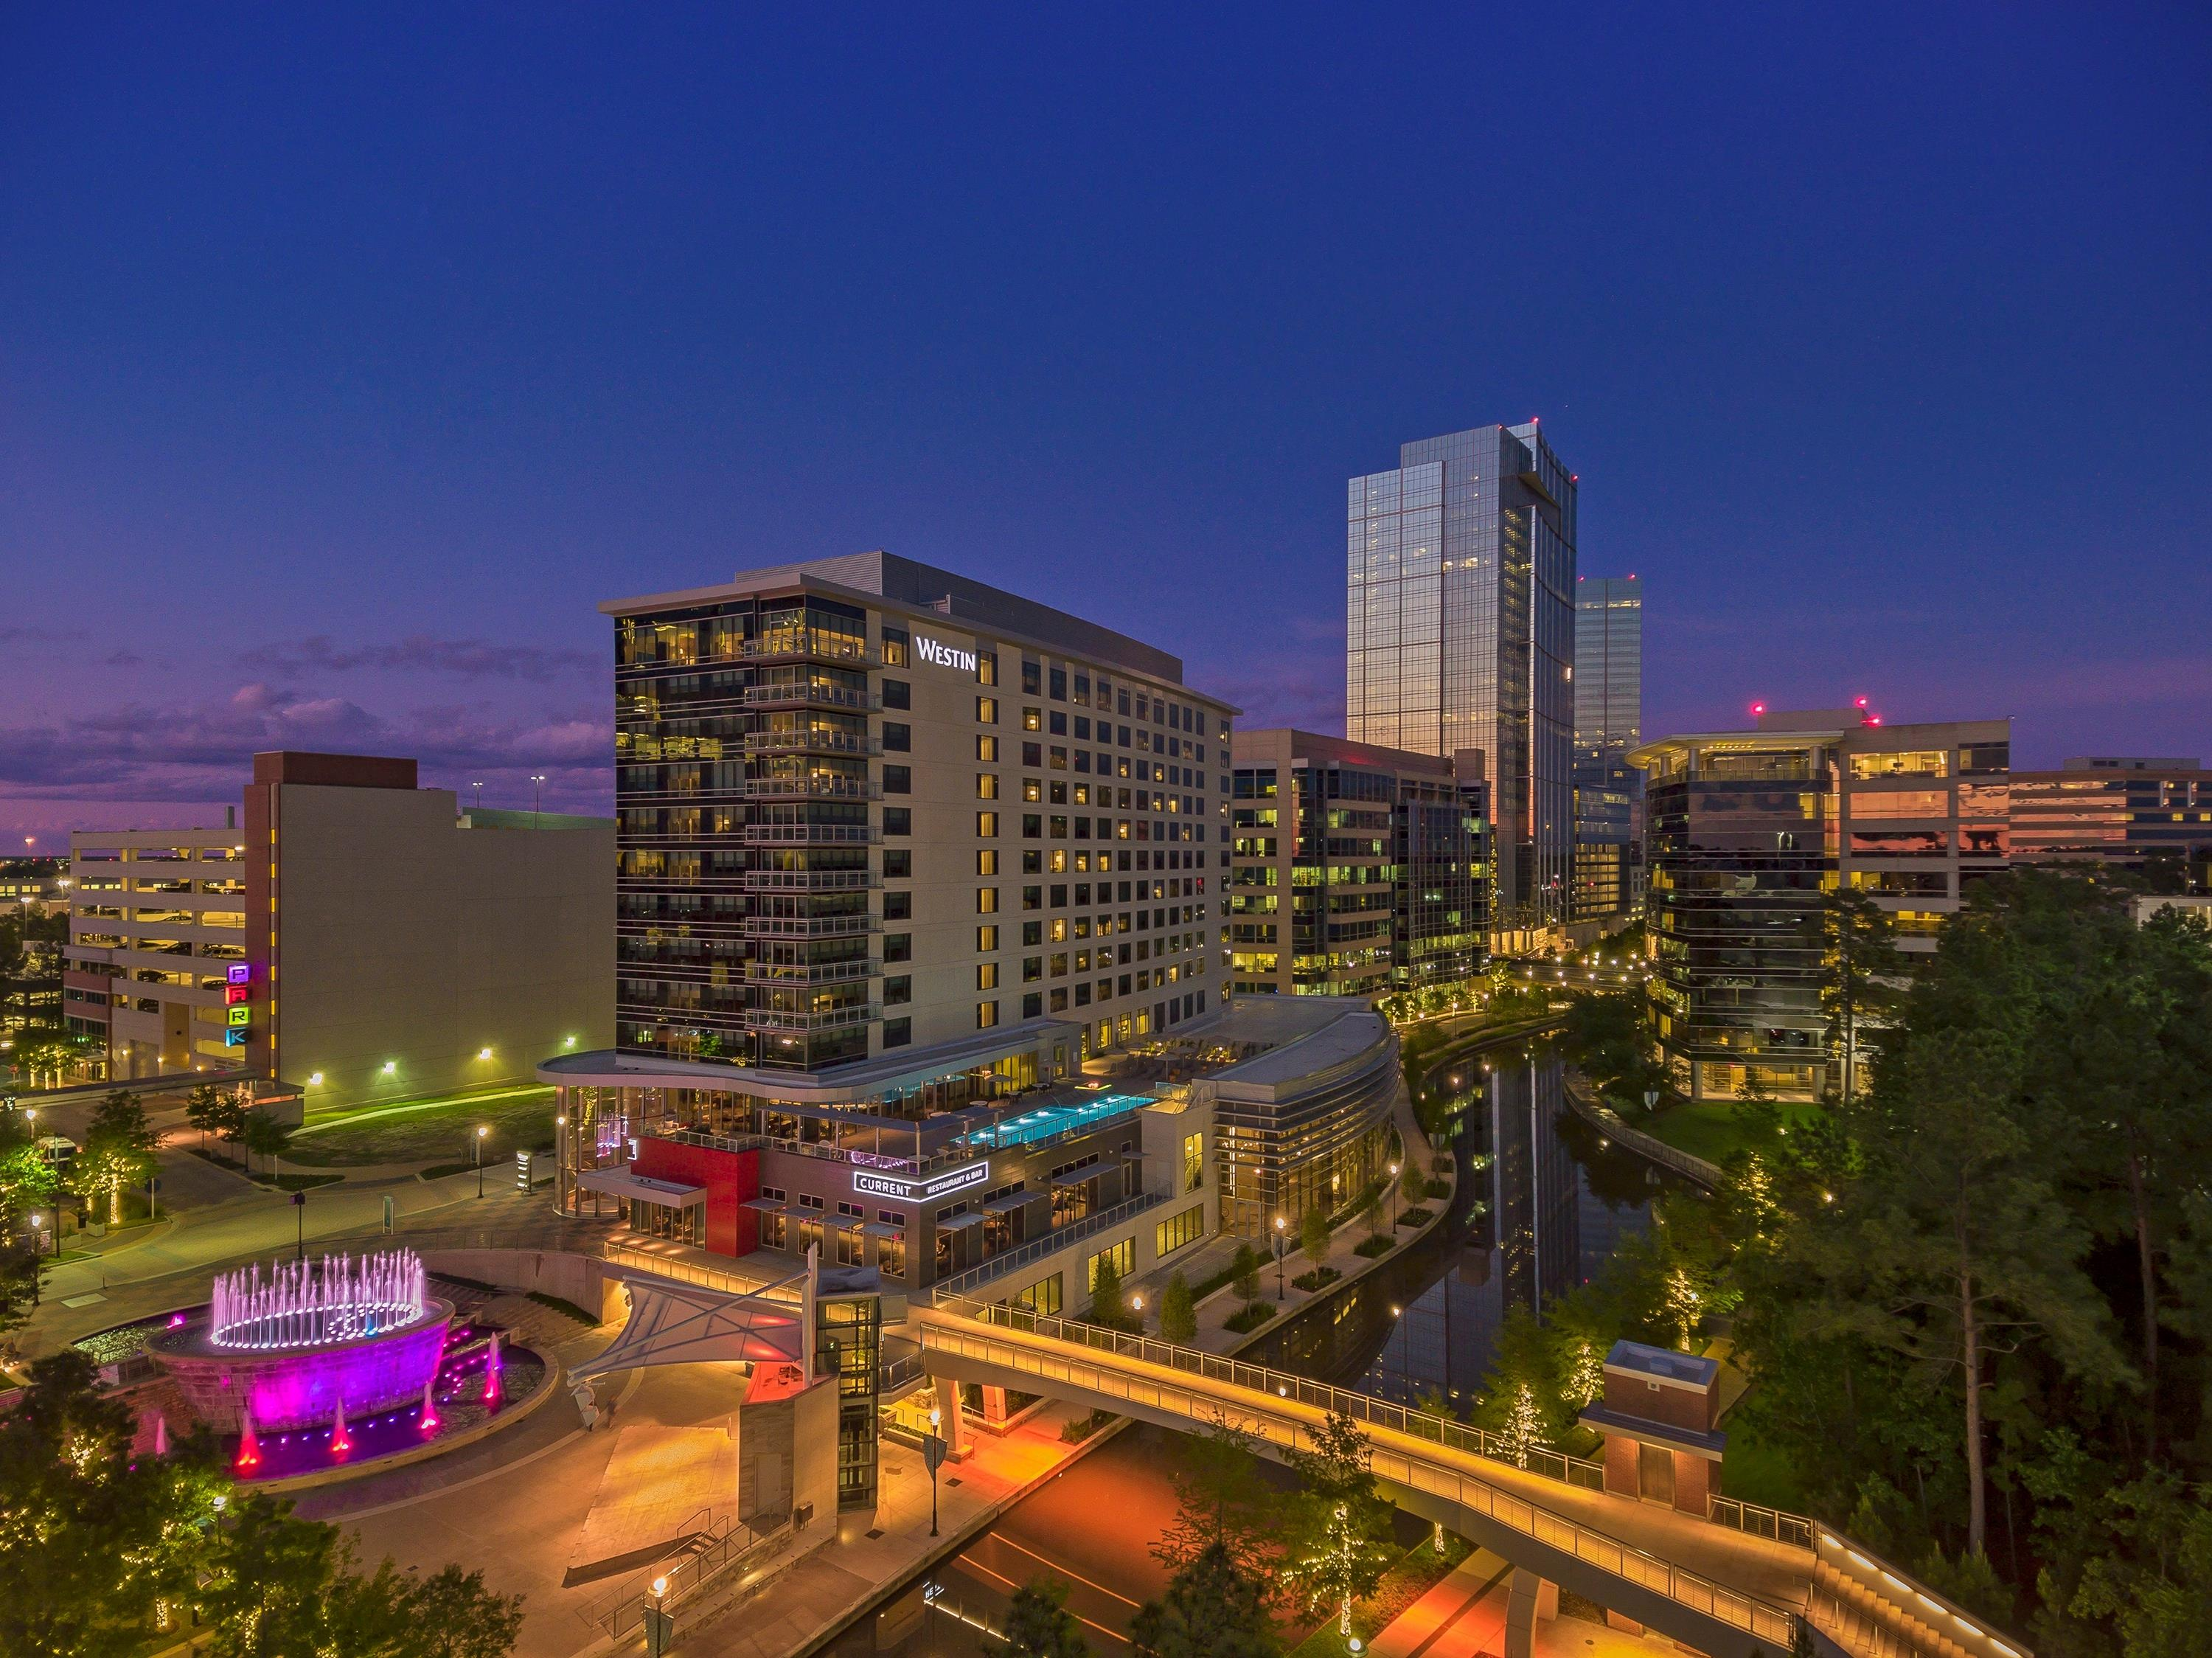 The Westin at The Woodlands image 38